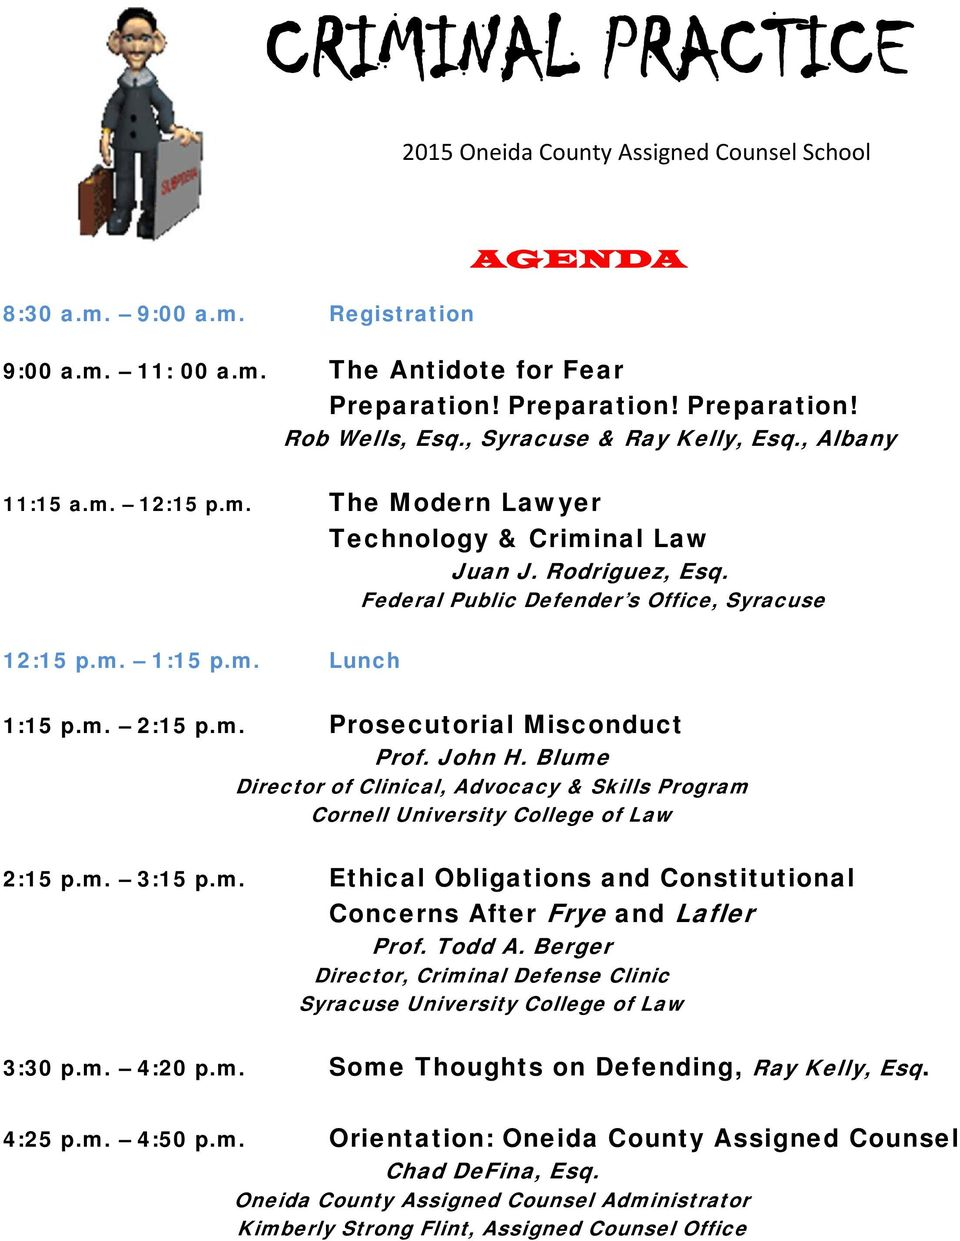 m. 2:15 p.m. Prosecutorial Misconduct Prof. John H. Blume Director of Clinical, Advocacy & Skills Program Cornell University College of Law 2:15 p.m. 3:15 p.m. Ethical Obligations and Constitutional Concerns After Frye and Lafler Prof.